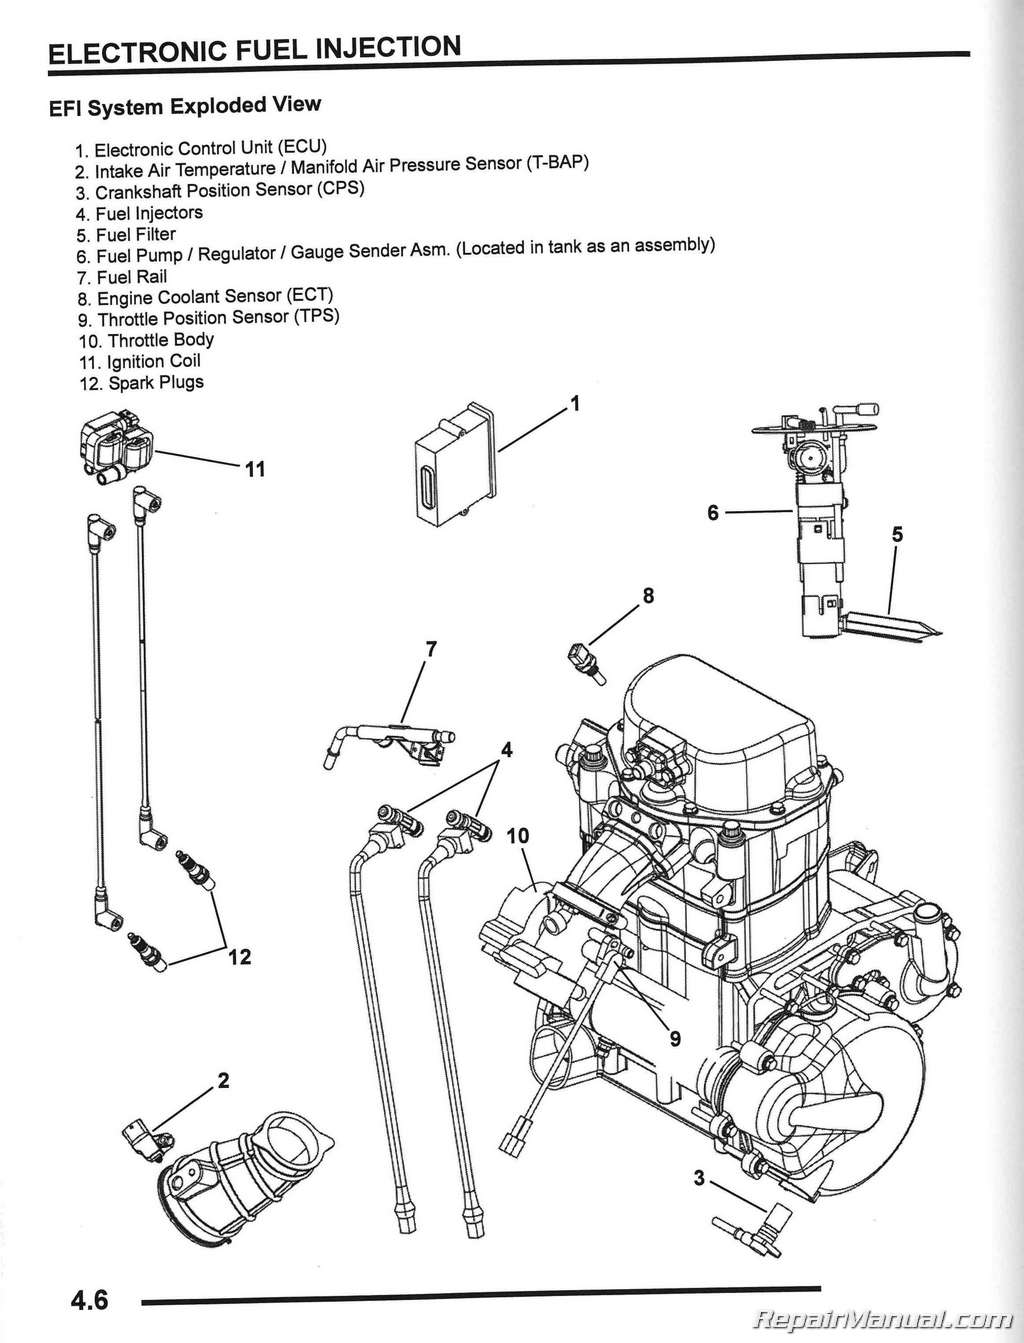 Polaris Engine Diagram Change Your Idea With Wiring Design 250 2008 Ranger Rzr 800 Side By Service Manual Rh Repairmanual Com 500